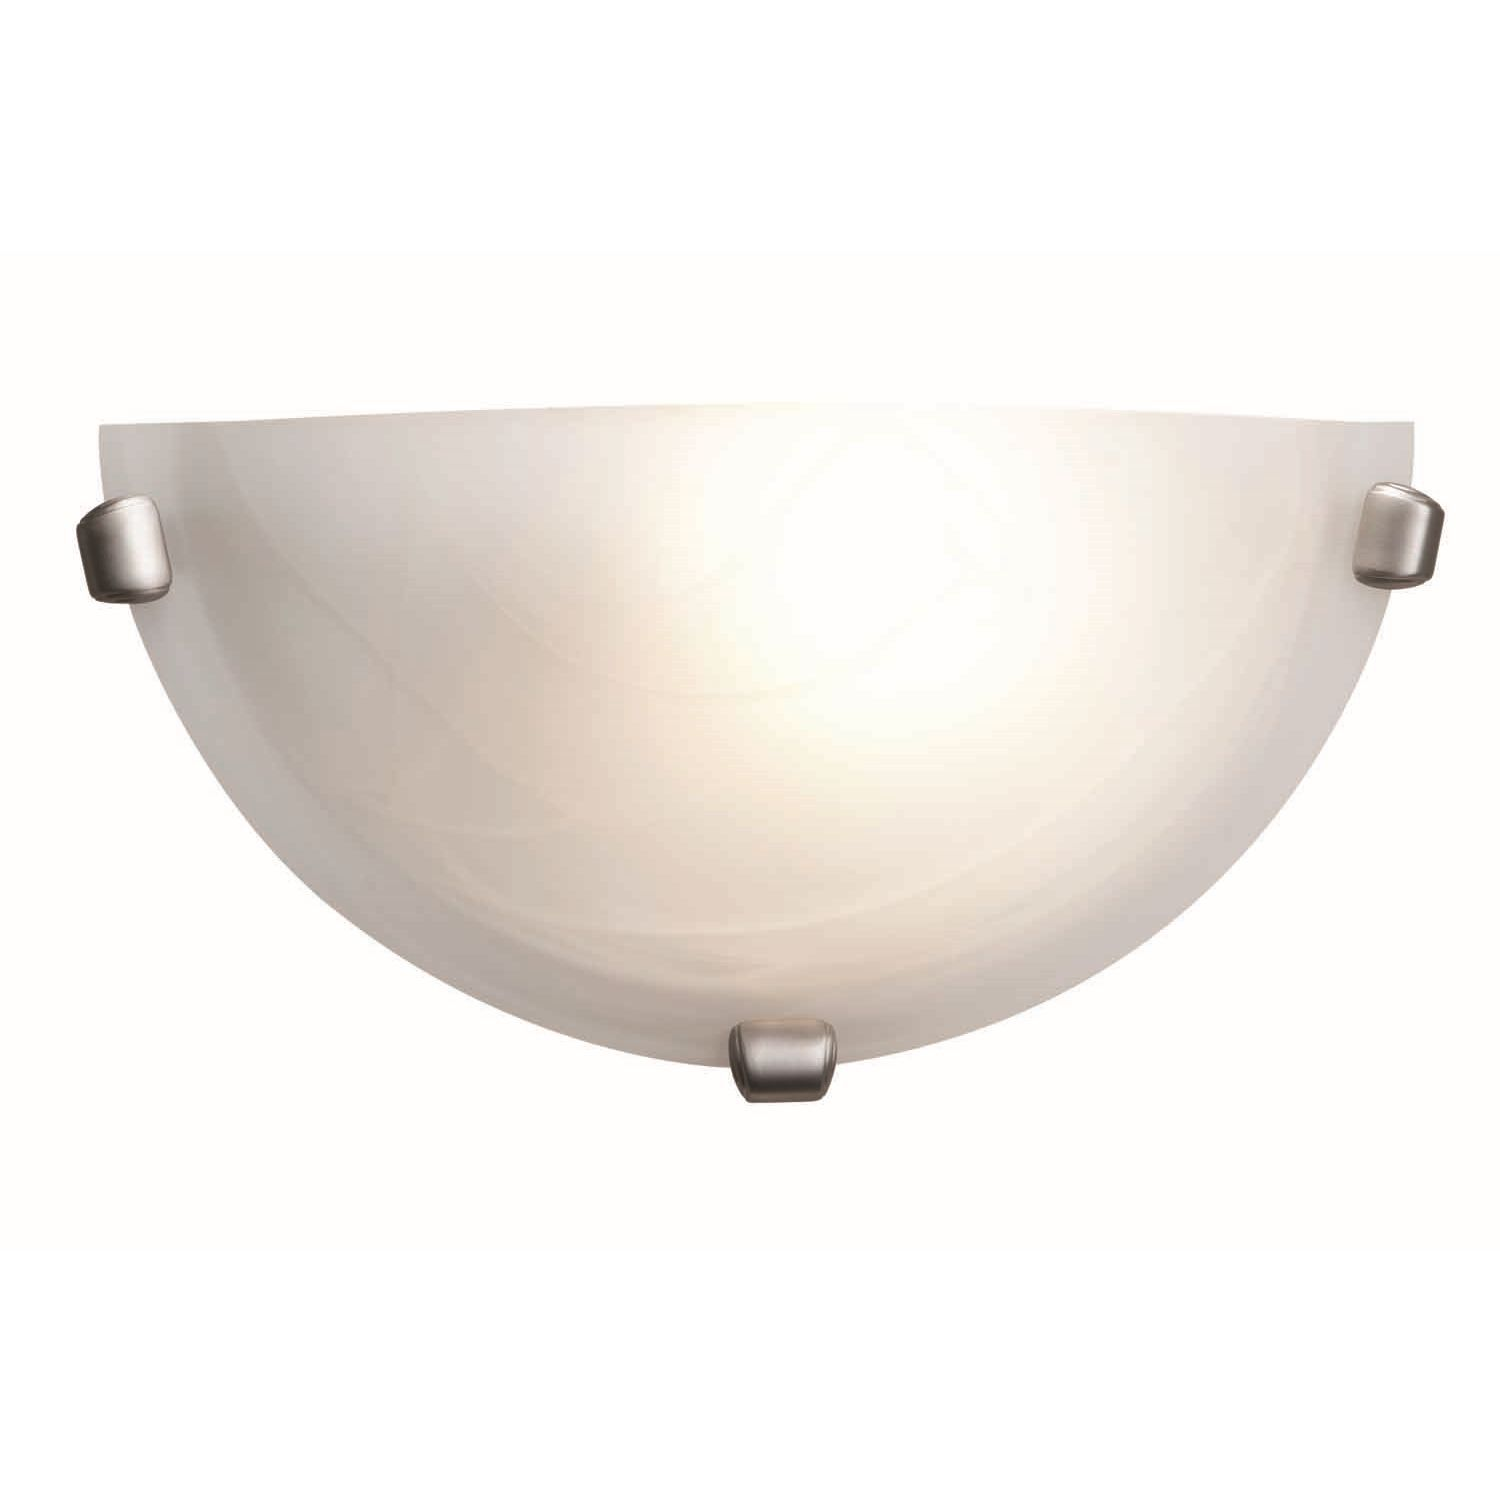 This stylish wall light sconce provides a versatile accent for your lighting and decor. Durably crafted and featuring an alabaster shade for softer illumination, this brushed-steel wall sconce is the perfect fixture for your home or office.